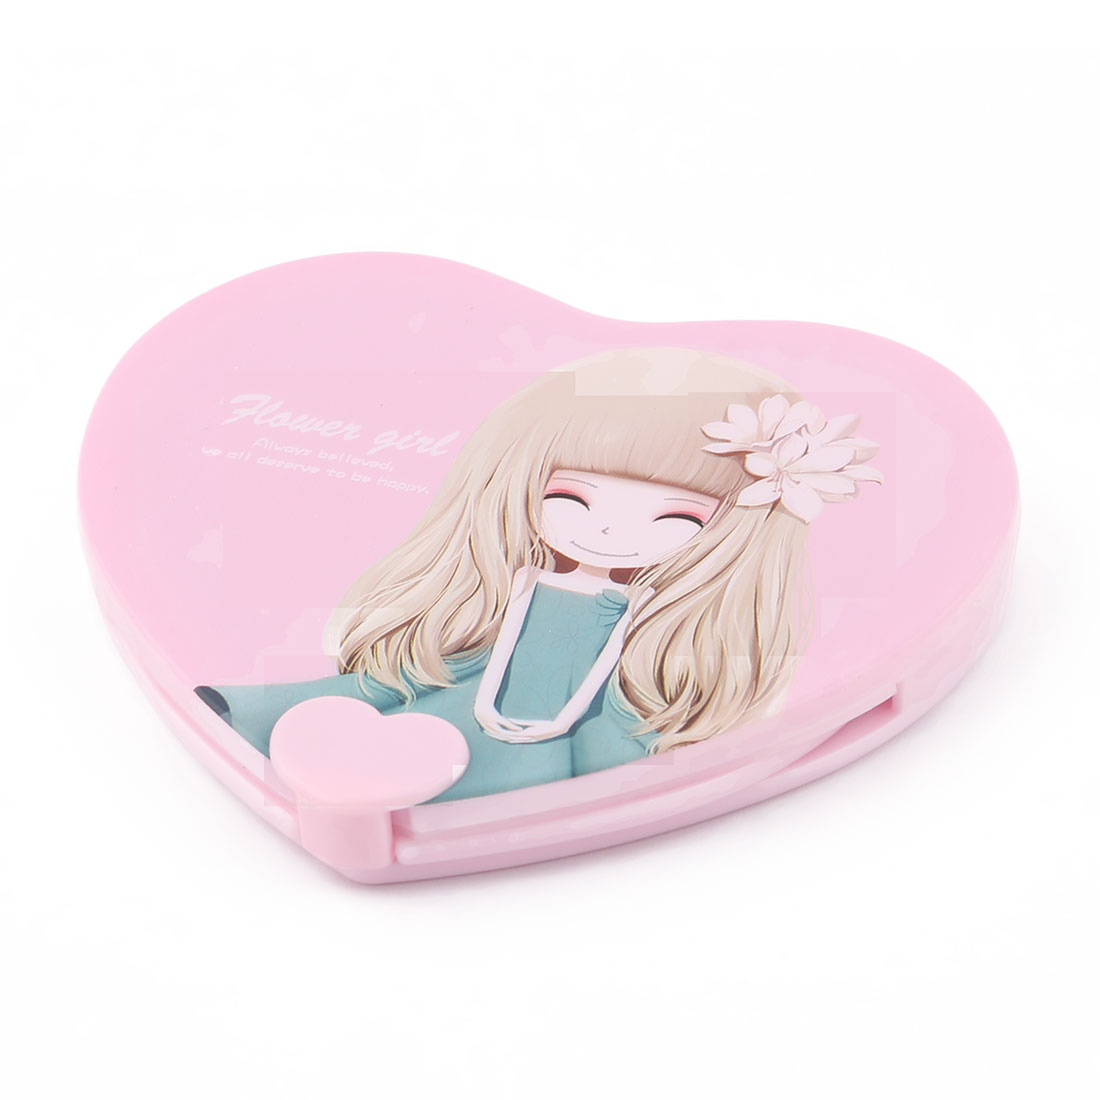 Home Lady Plastic Heart Shaped Folding Mini Makeup Cosmetic Mirror Comb 2 in 1